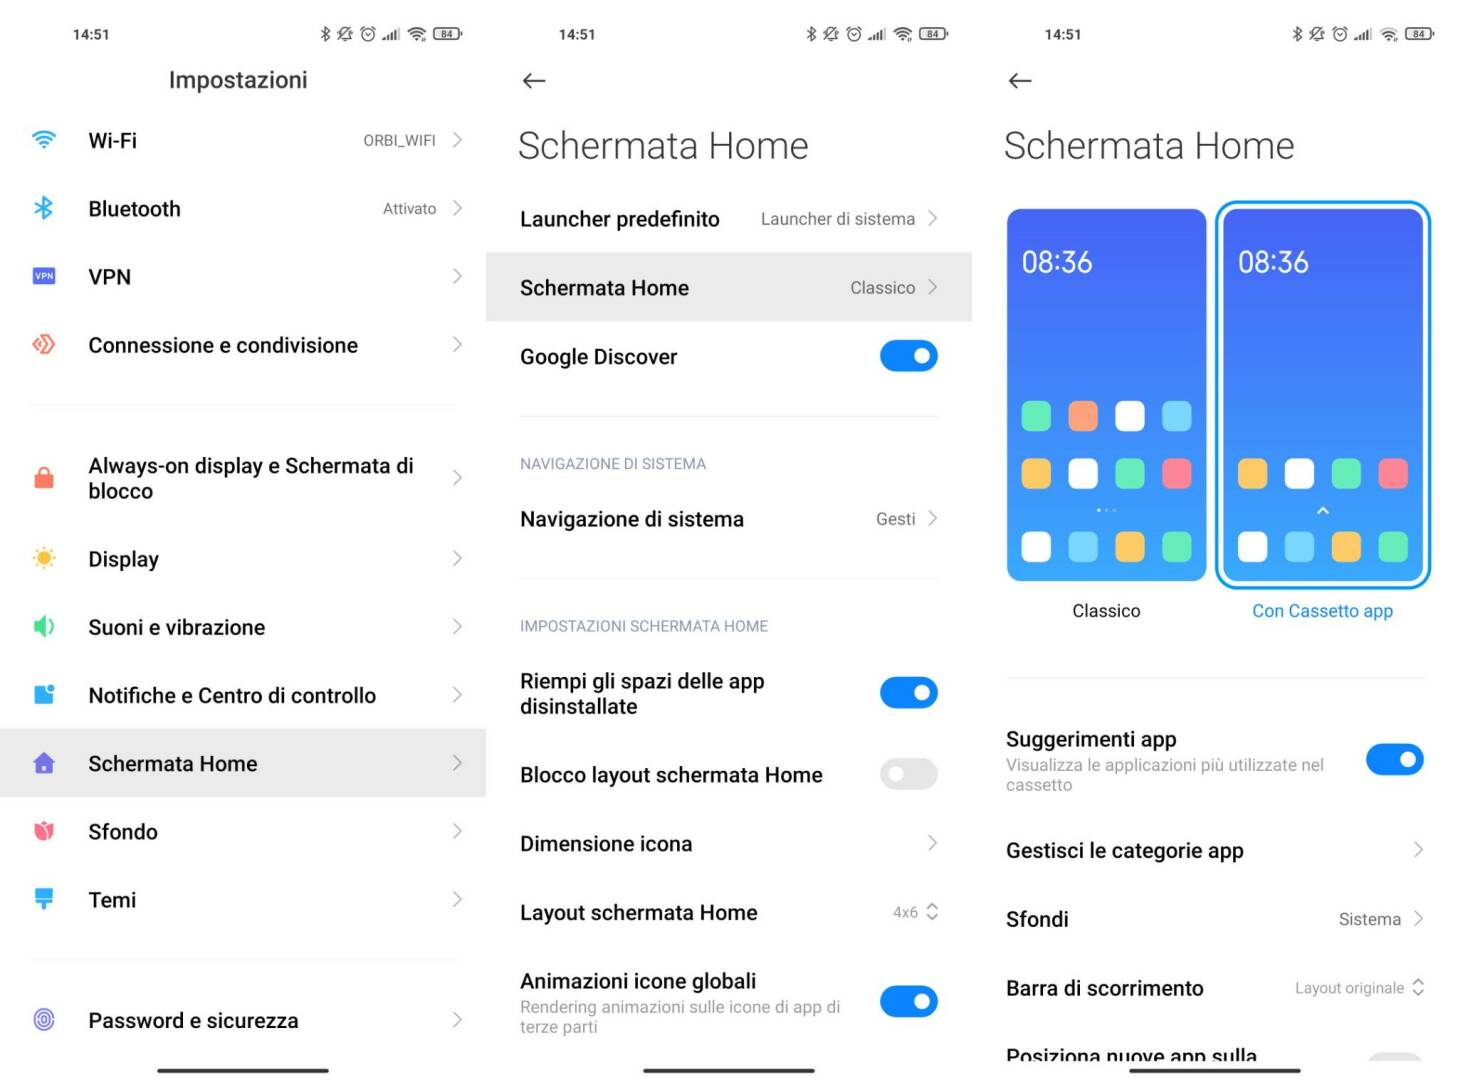 MIUI 12 Tips and Tricks